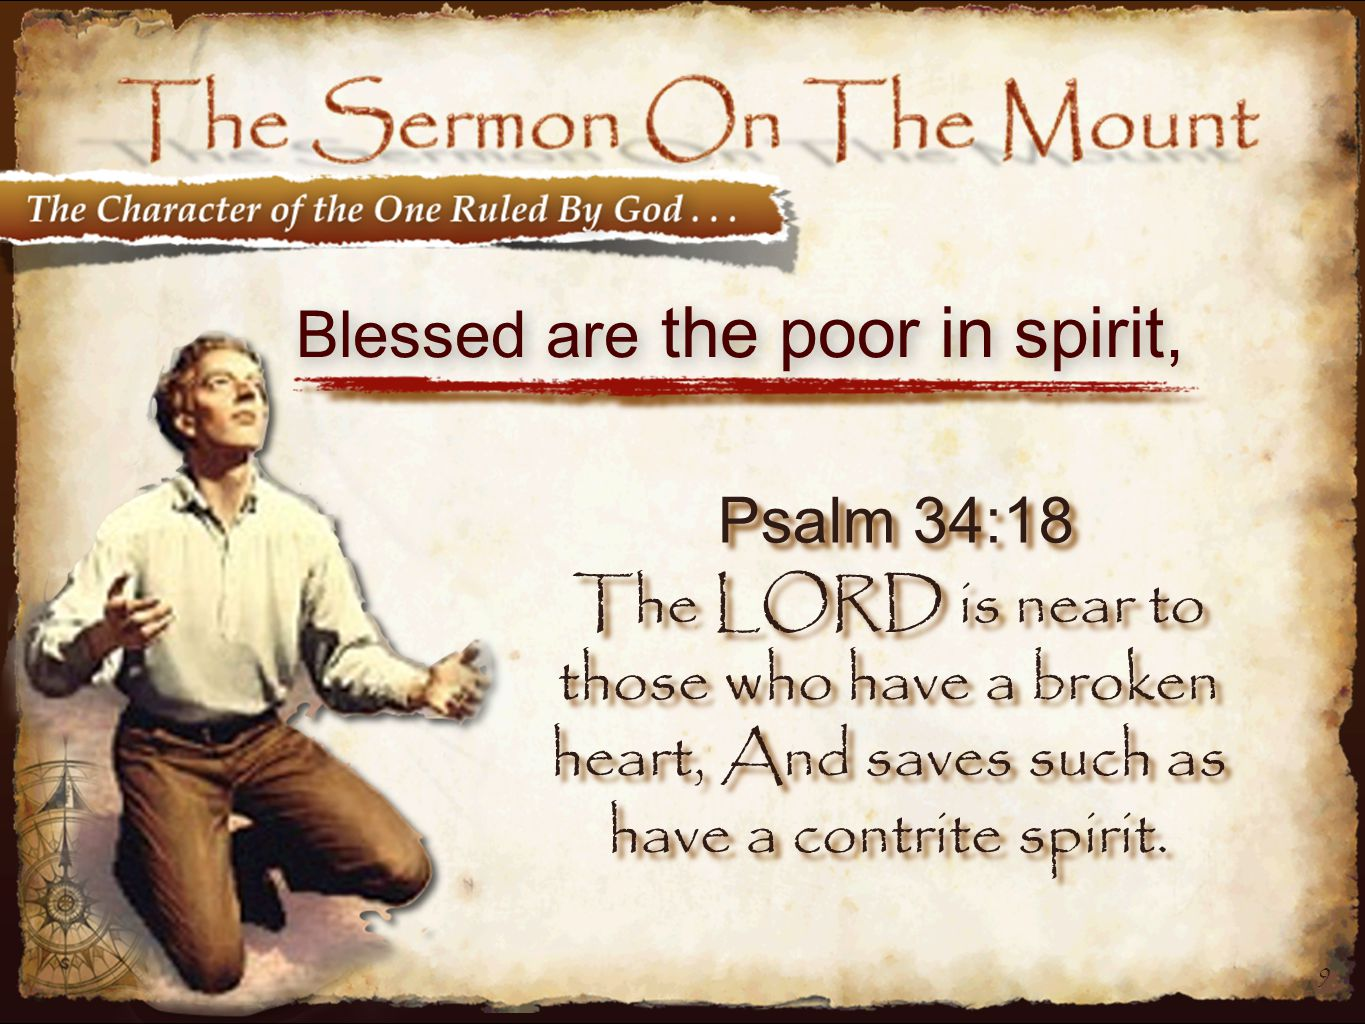 9 Blessed are the poor in spirit, Psalm 34:18 The LORD is near to those who have a broken heart, And saves such as have a contrite spirit.